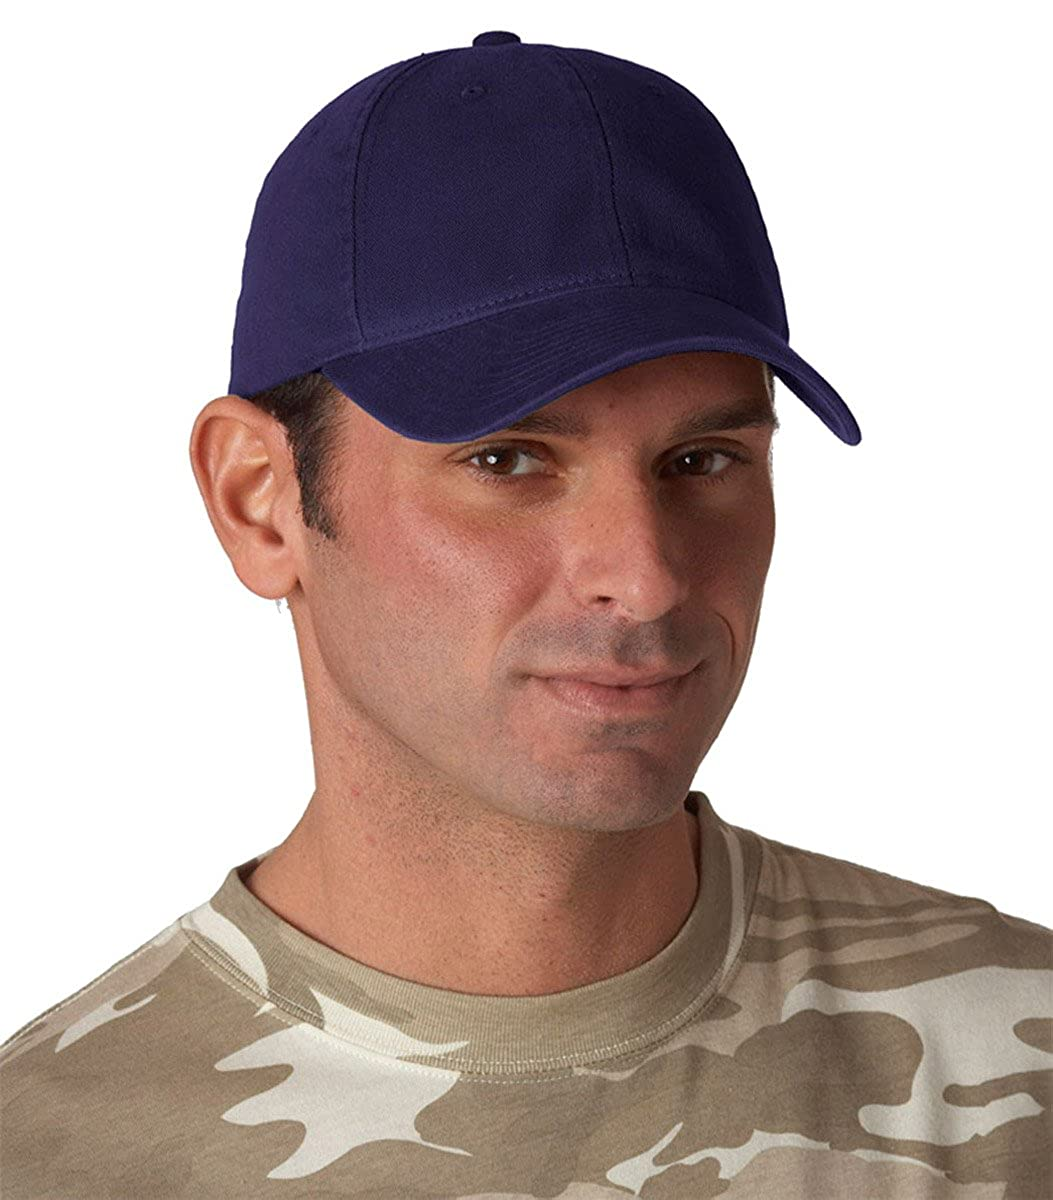 f574d19b1bb Amazon.com  Flexfit 6997 Low Profile Garment Washed Cotton Cap - Small  Medium (Navy)  Clothing